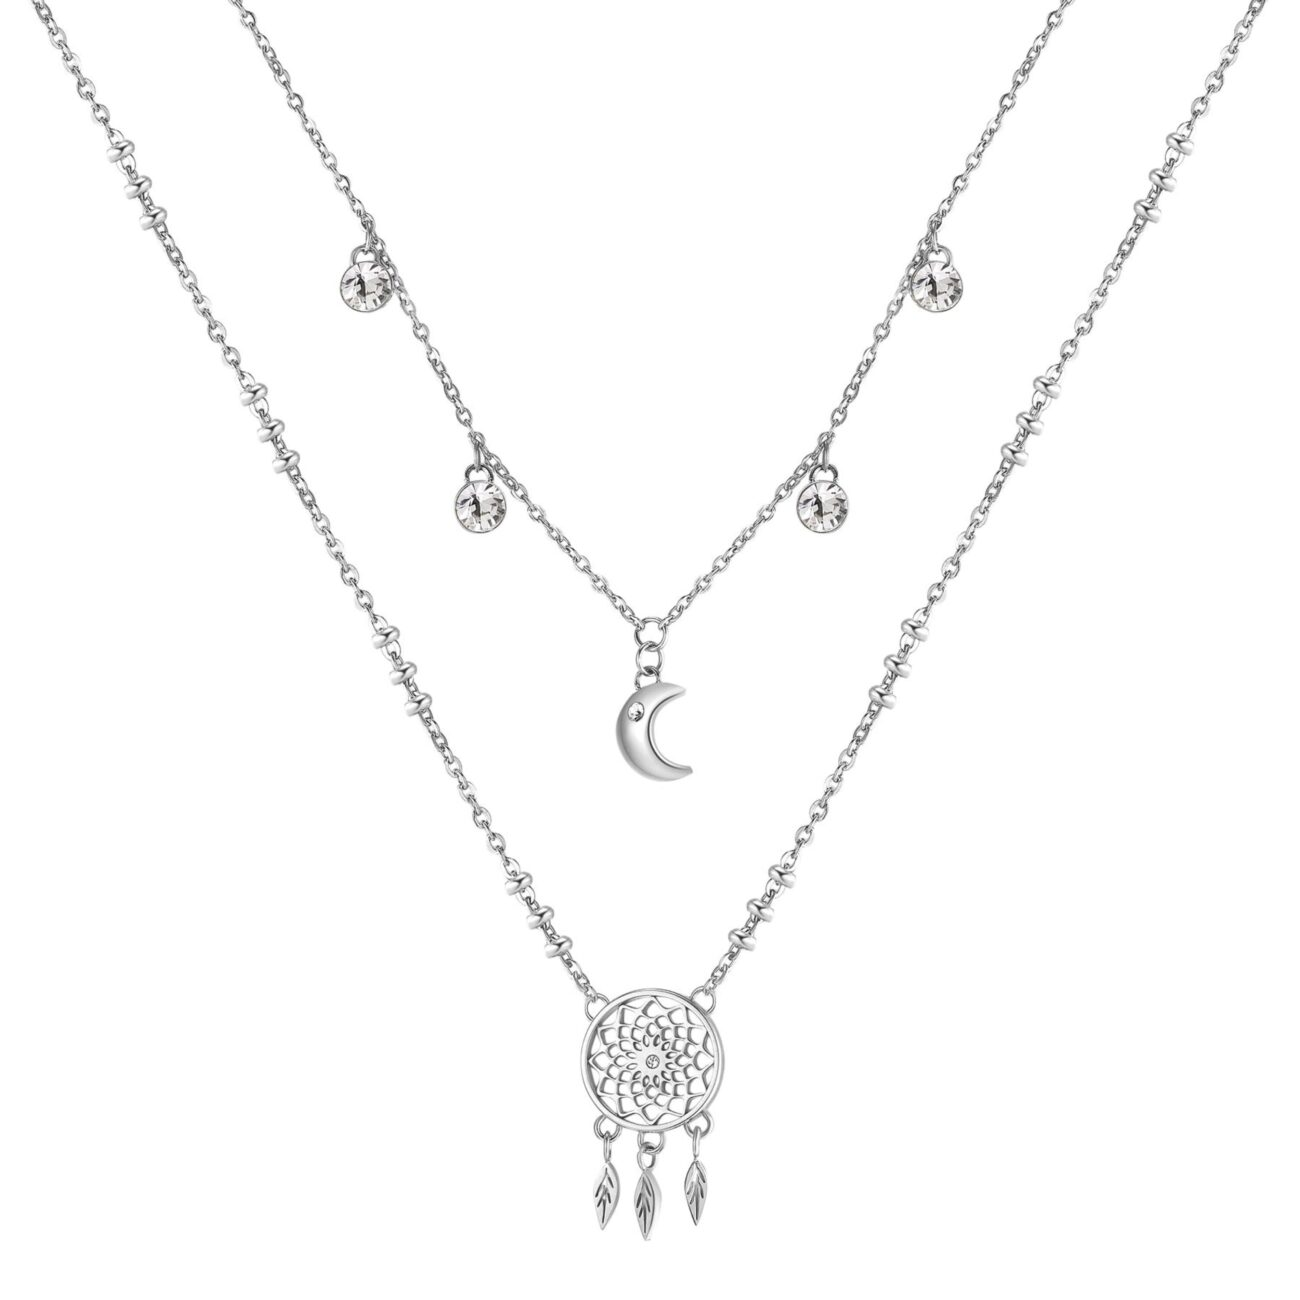 DREAMCATCHER: SERENITY, PROTECTION, HOPEBe swaddled in positive dreams and protected from negative ones: dreamcatchers pass happy thoughts and positive energy through your centre to your brain while you are sleeping316L stainless steel double necklace with dreamcatcher and moon pendants and crystals.